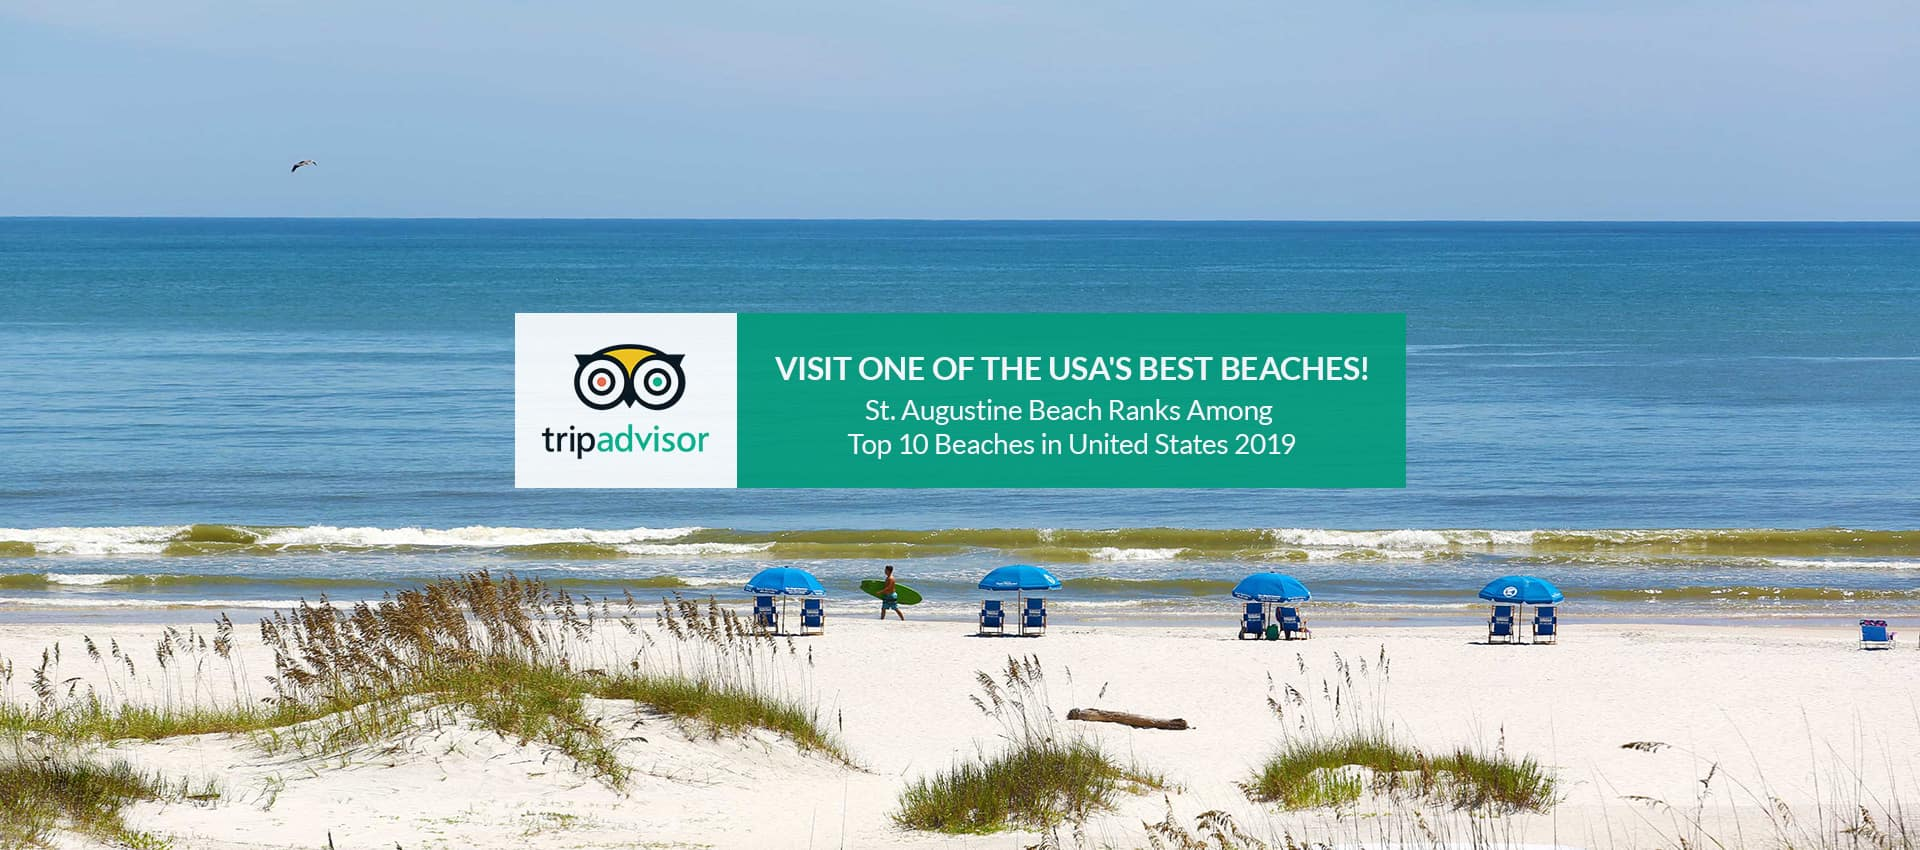 Visit one of the USA's best beaches. St. Augustine Beach ranks among top 10 Beach in the US